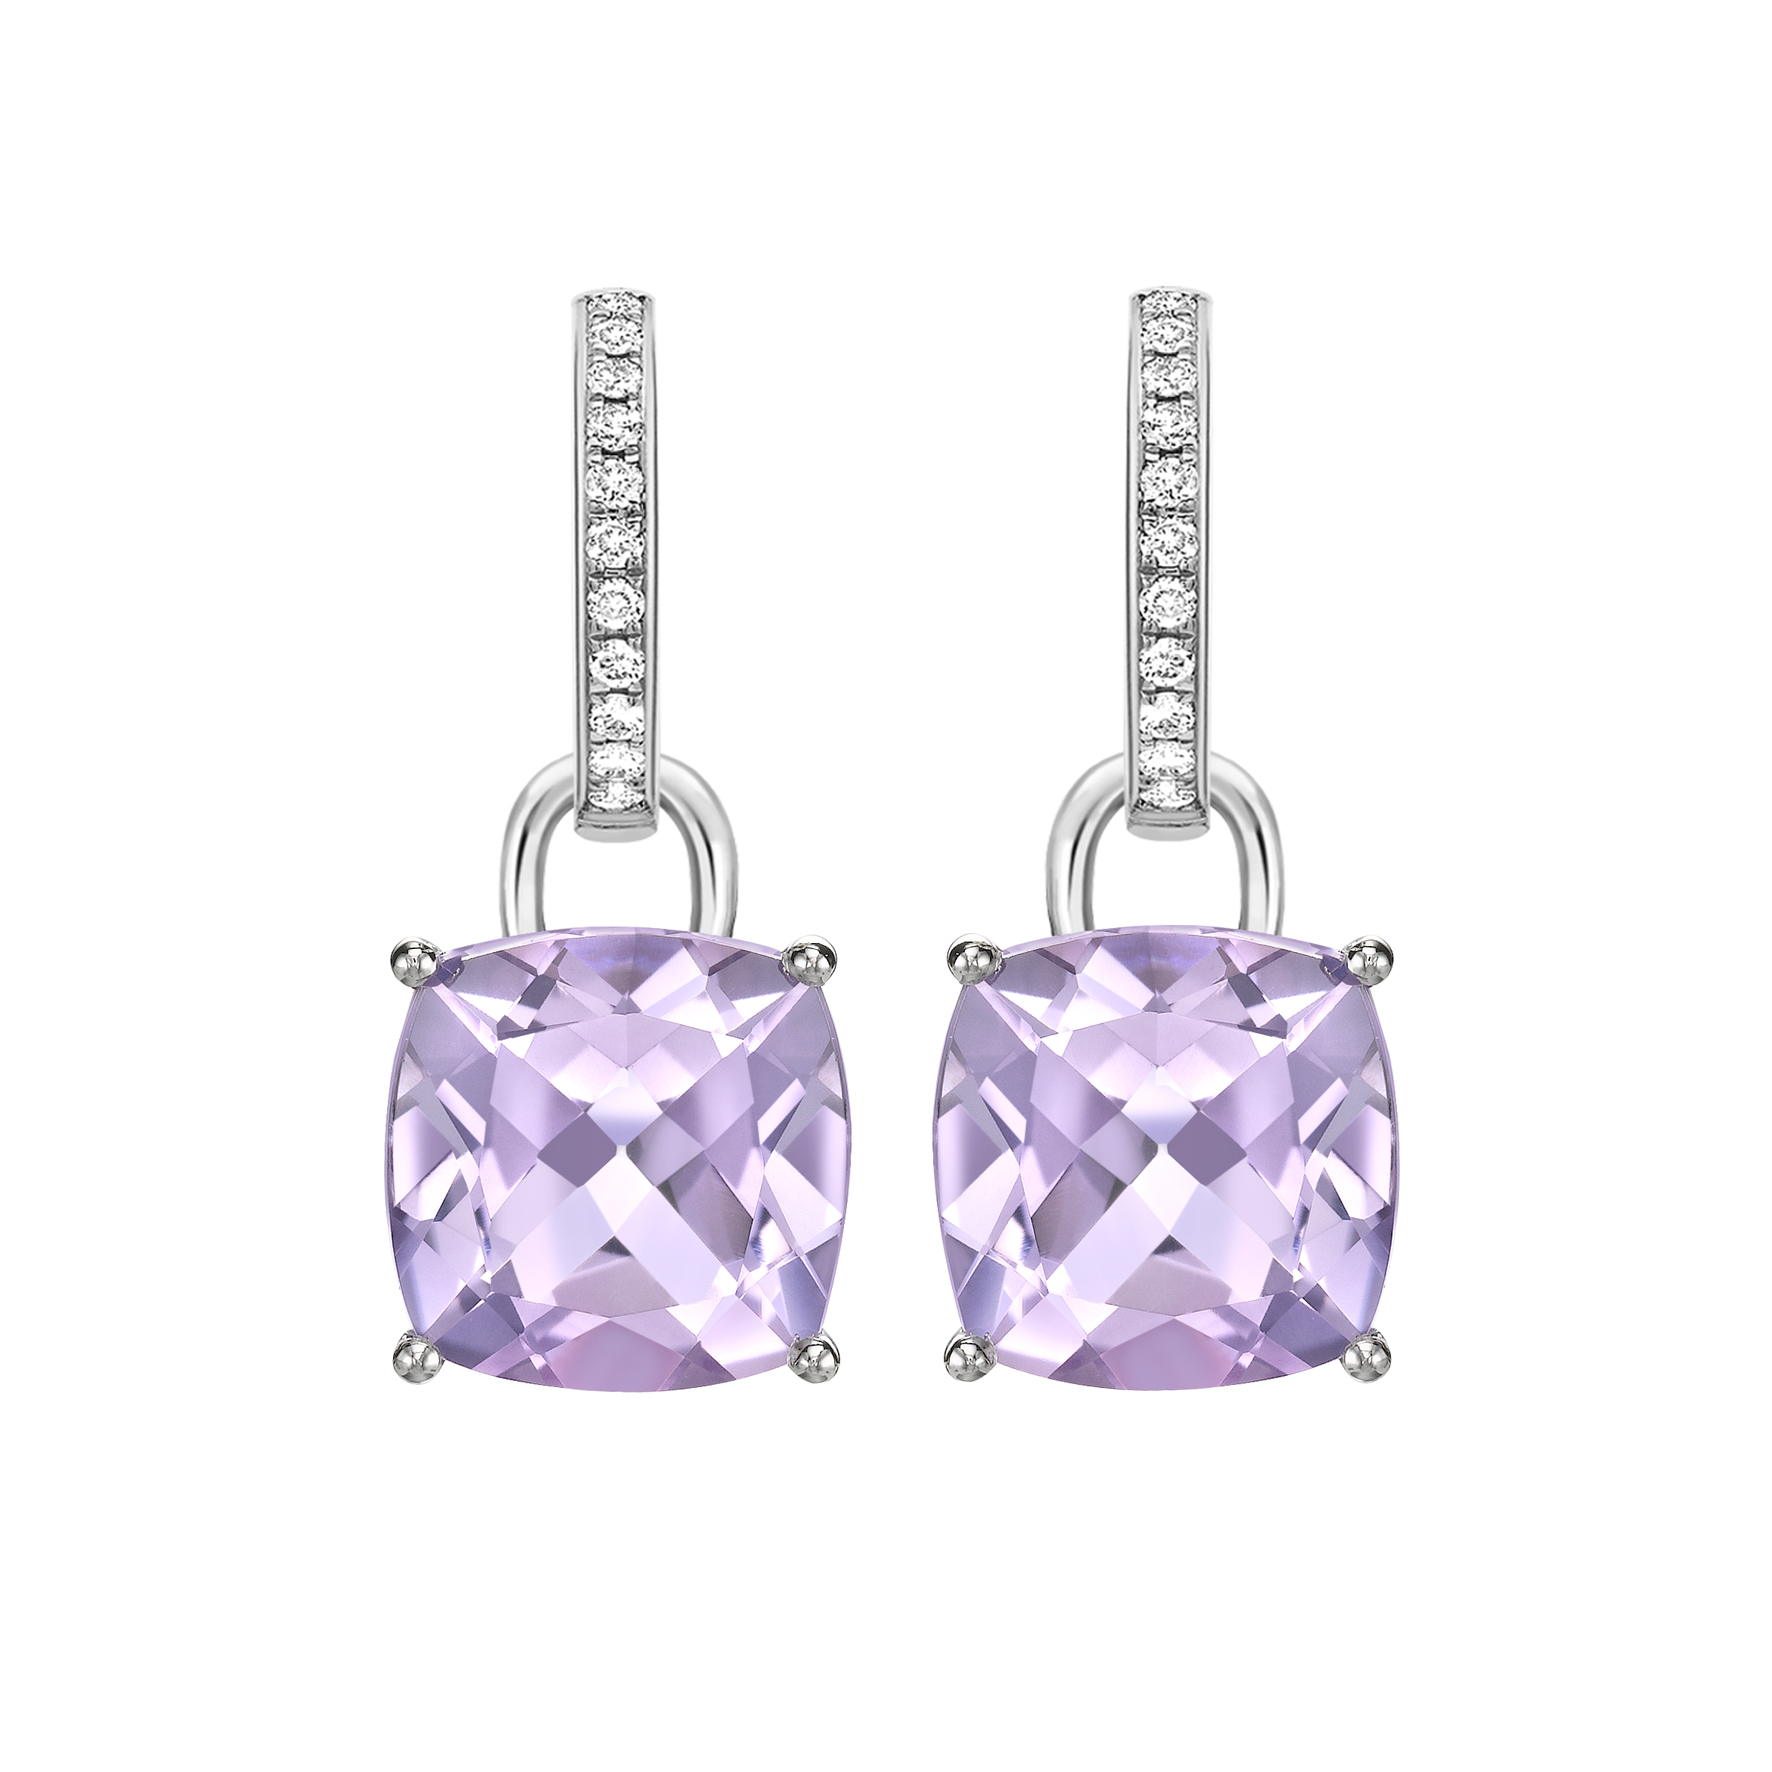 Kiki Lavender Amethyst Classic Earrings